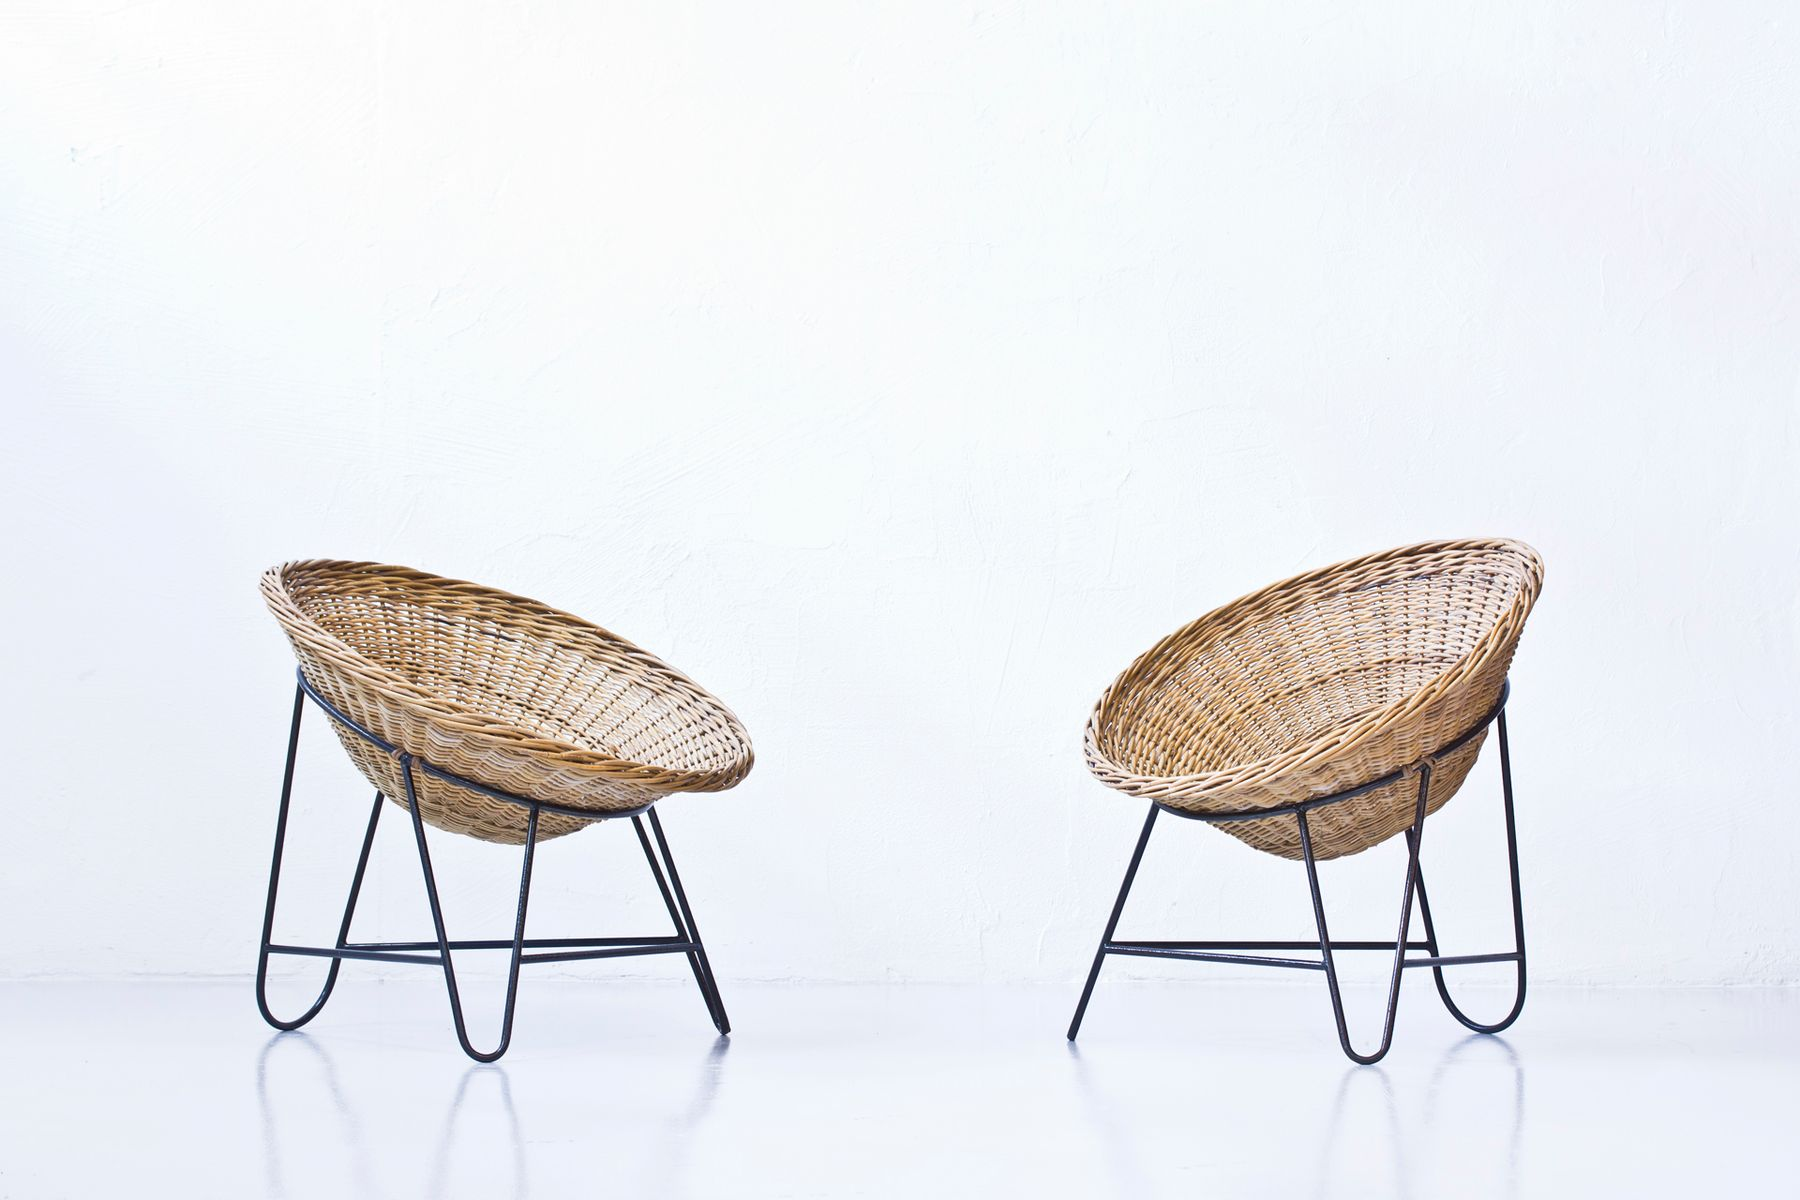 Rattan Chairs Vintage Rattan Chairs Set Of 2